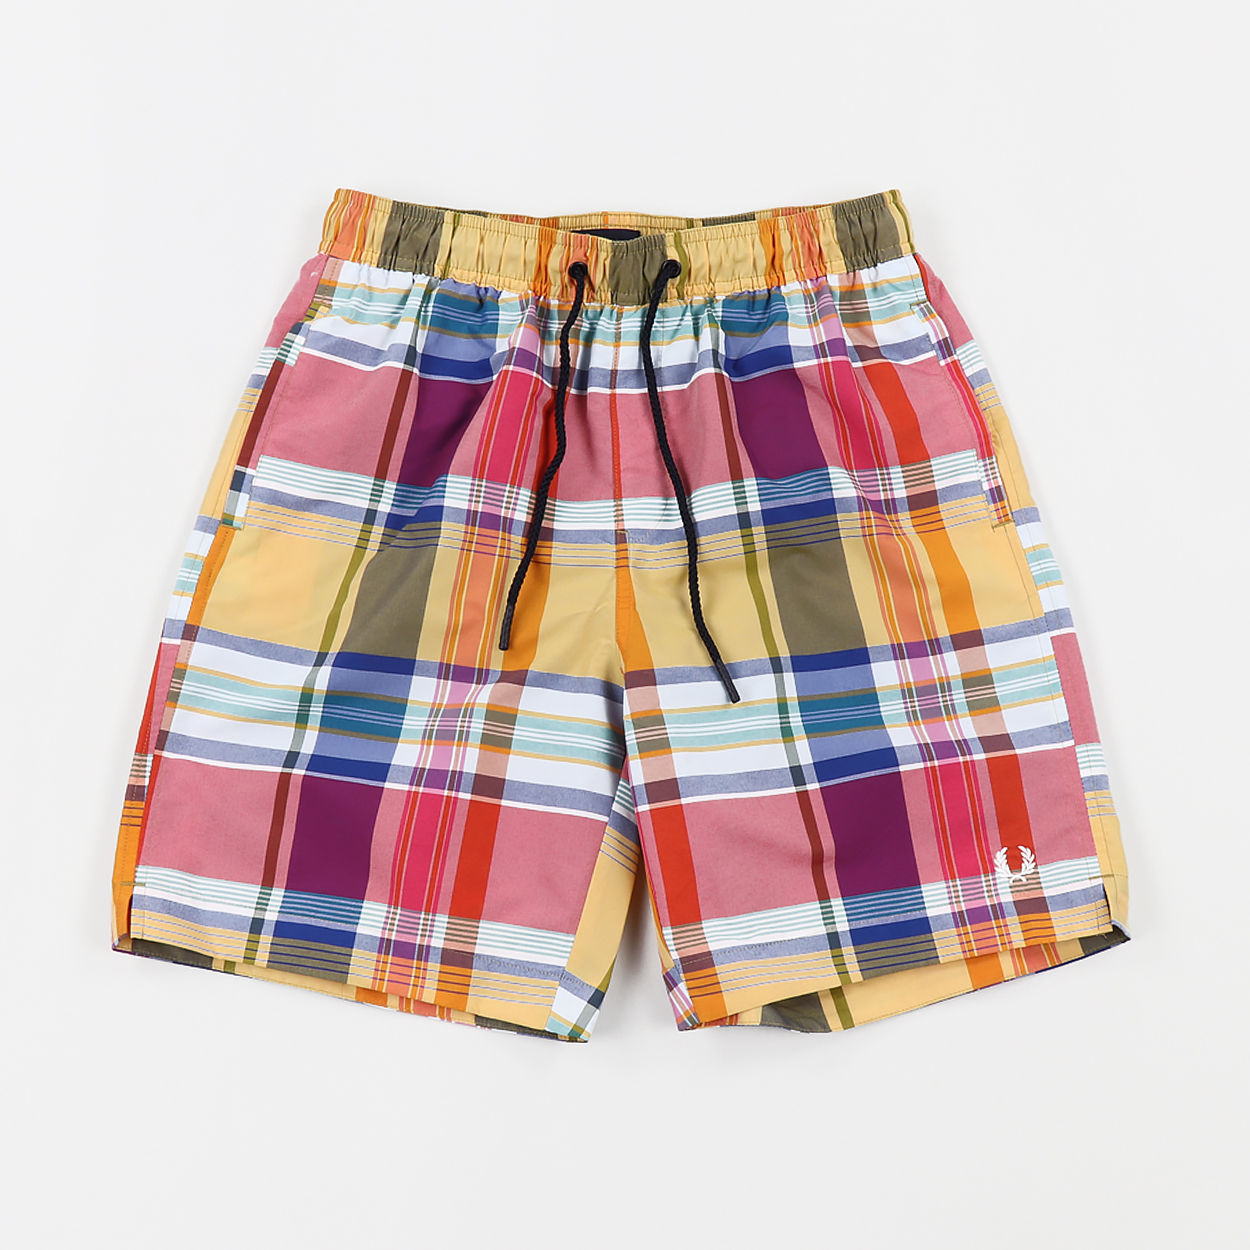 419a0896b4 Fred Perry Mens Madras Check Summer Swimming Shorts Red Yellow £65.00